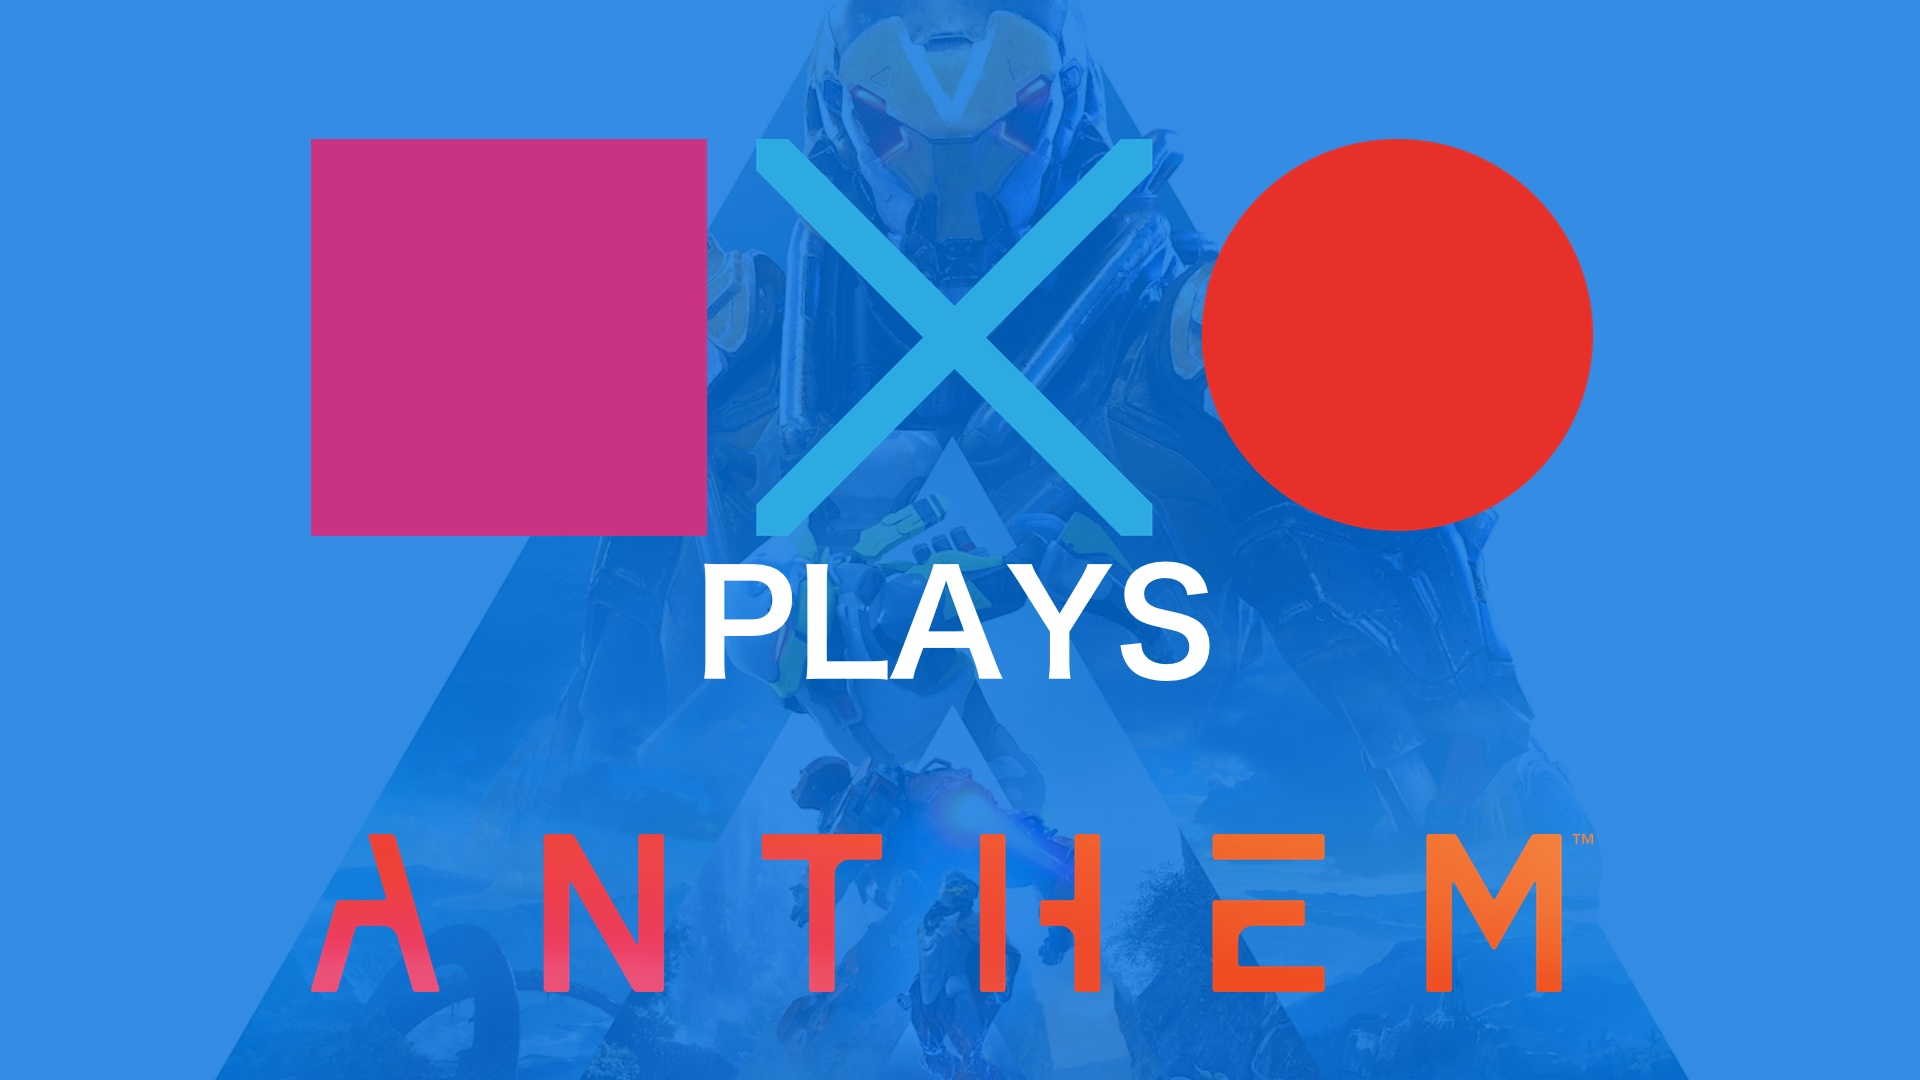 Anthem | SquareXO Plays